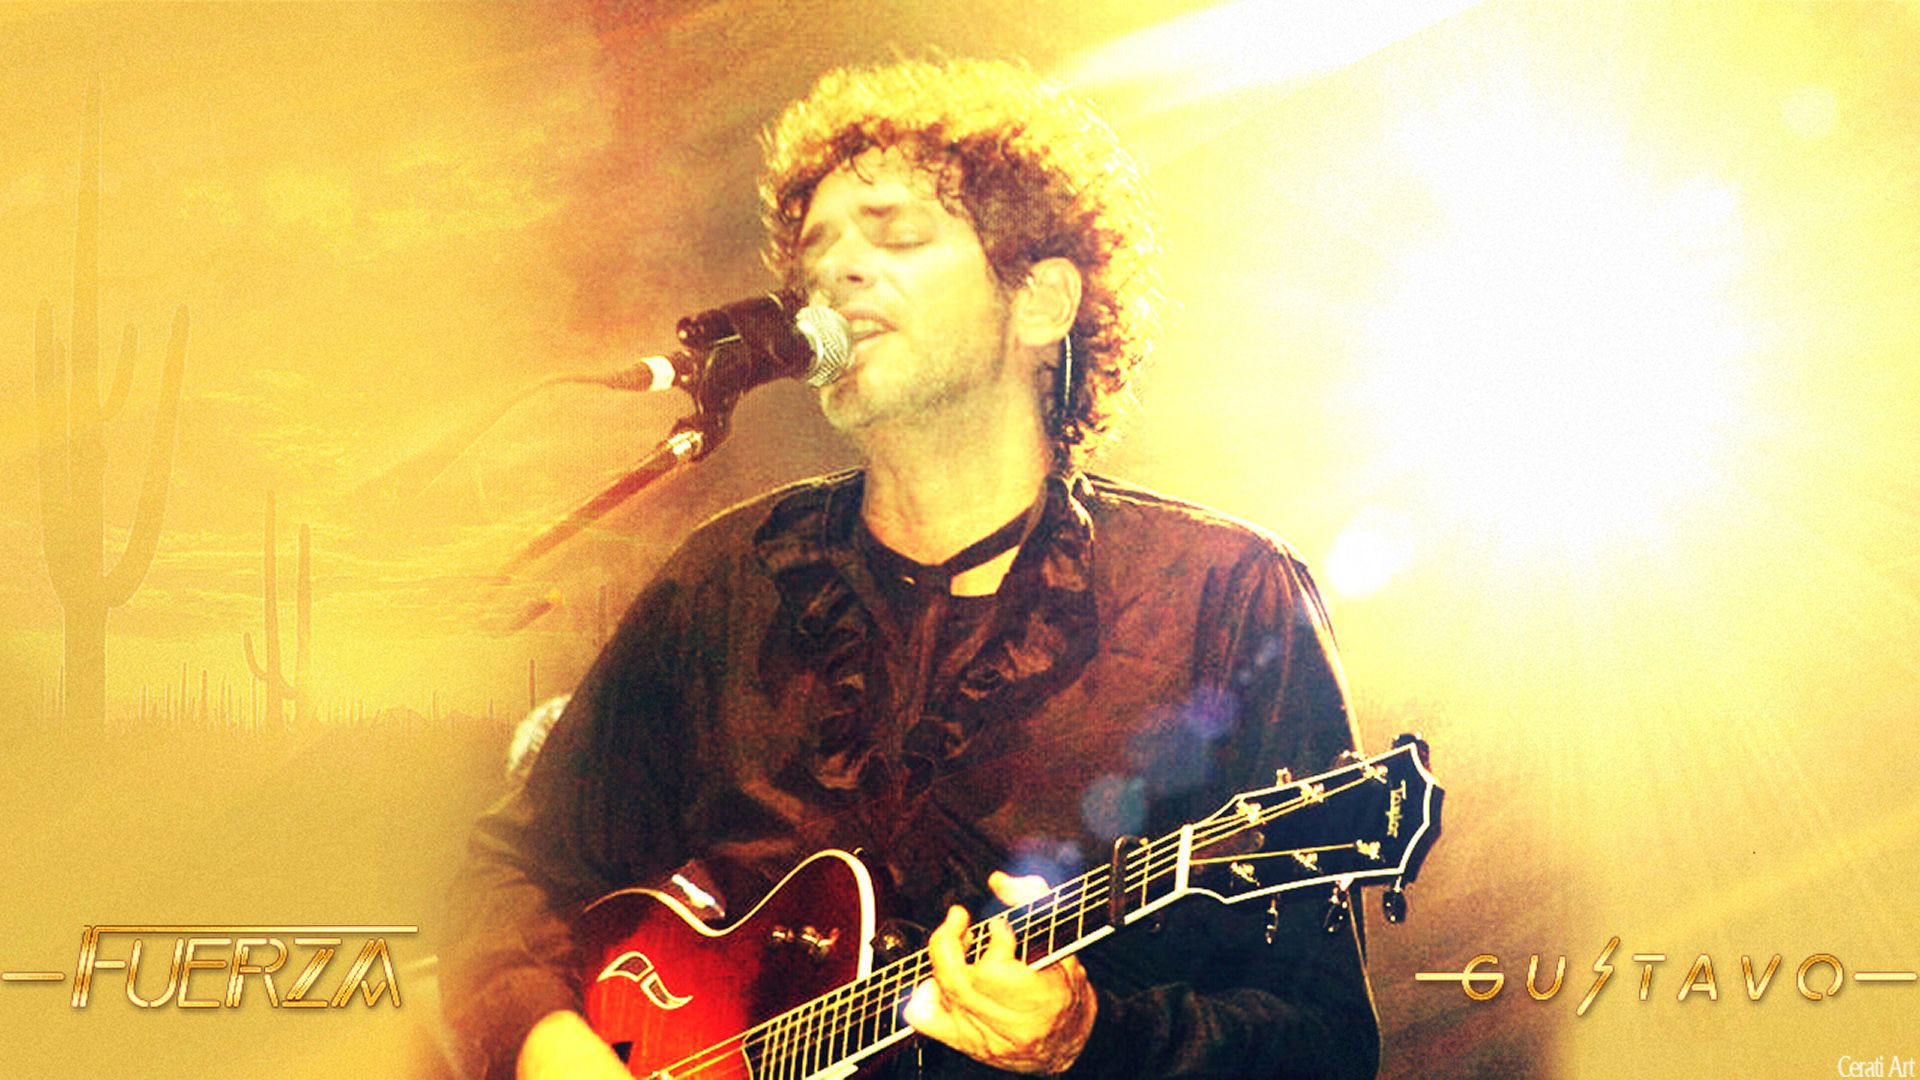 Gustavo Cerati Wallpapers Top Free Gustavo Cerati Backgrounds Wallpaperaccess